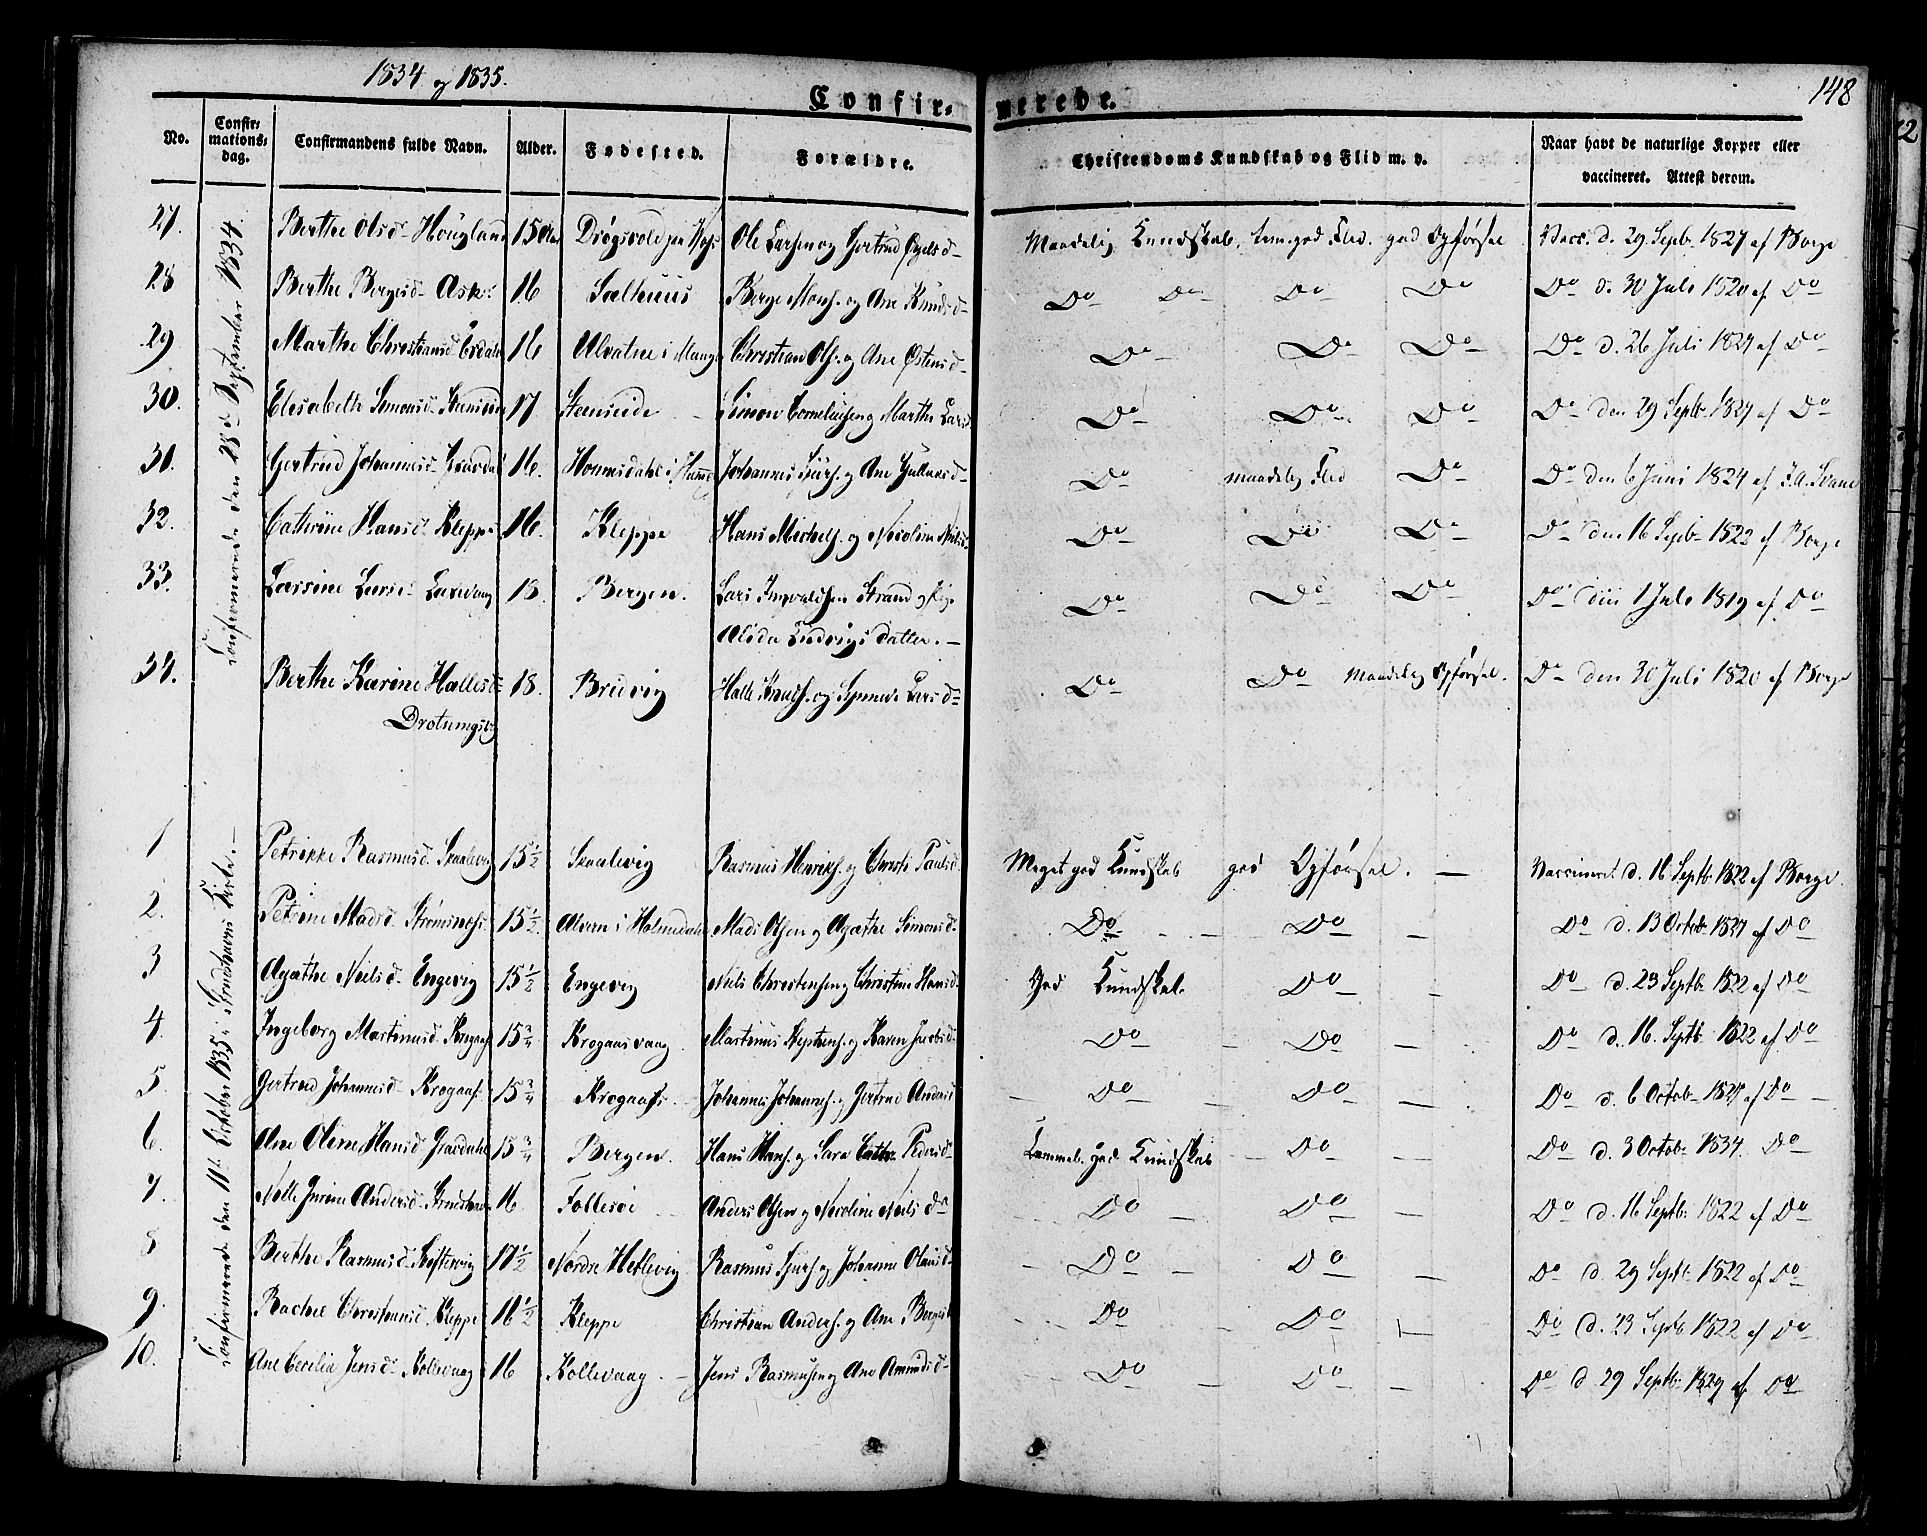 SAB, Askøy Sokneprestembete, H/Ha/Haa/Haaa/L0004: Parish register (official) no. A 4, 1825-1845, p. 148